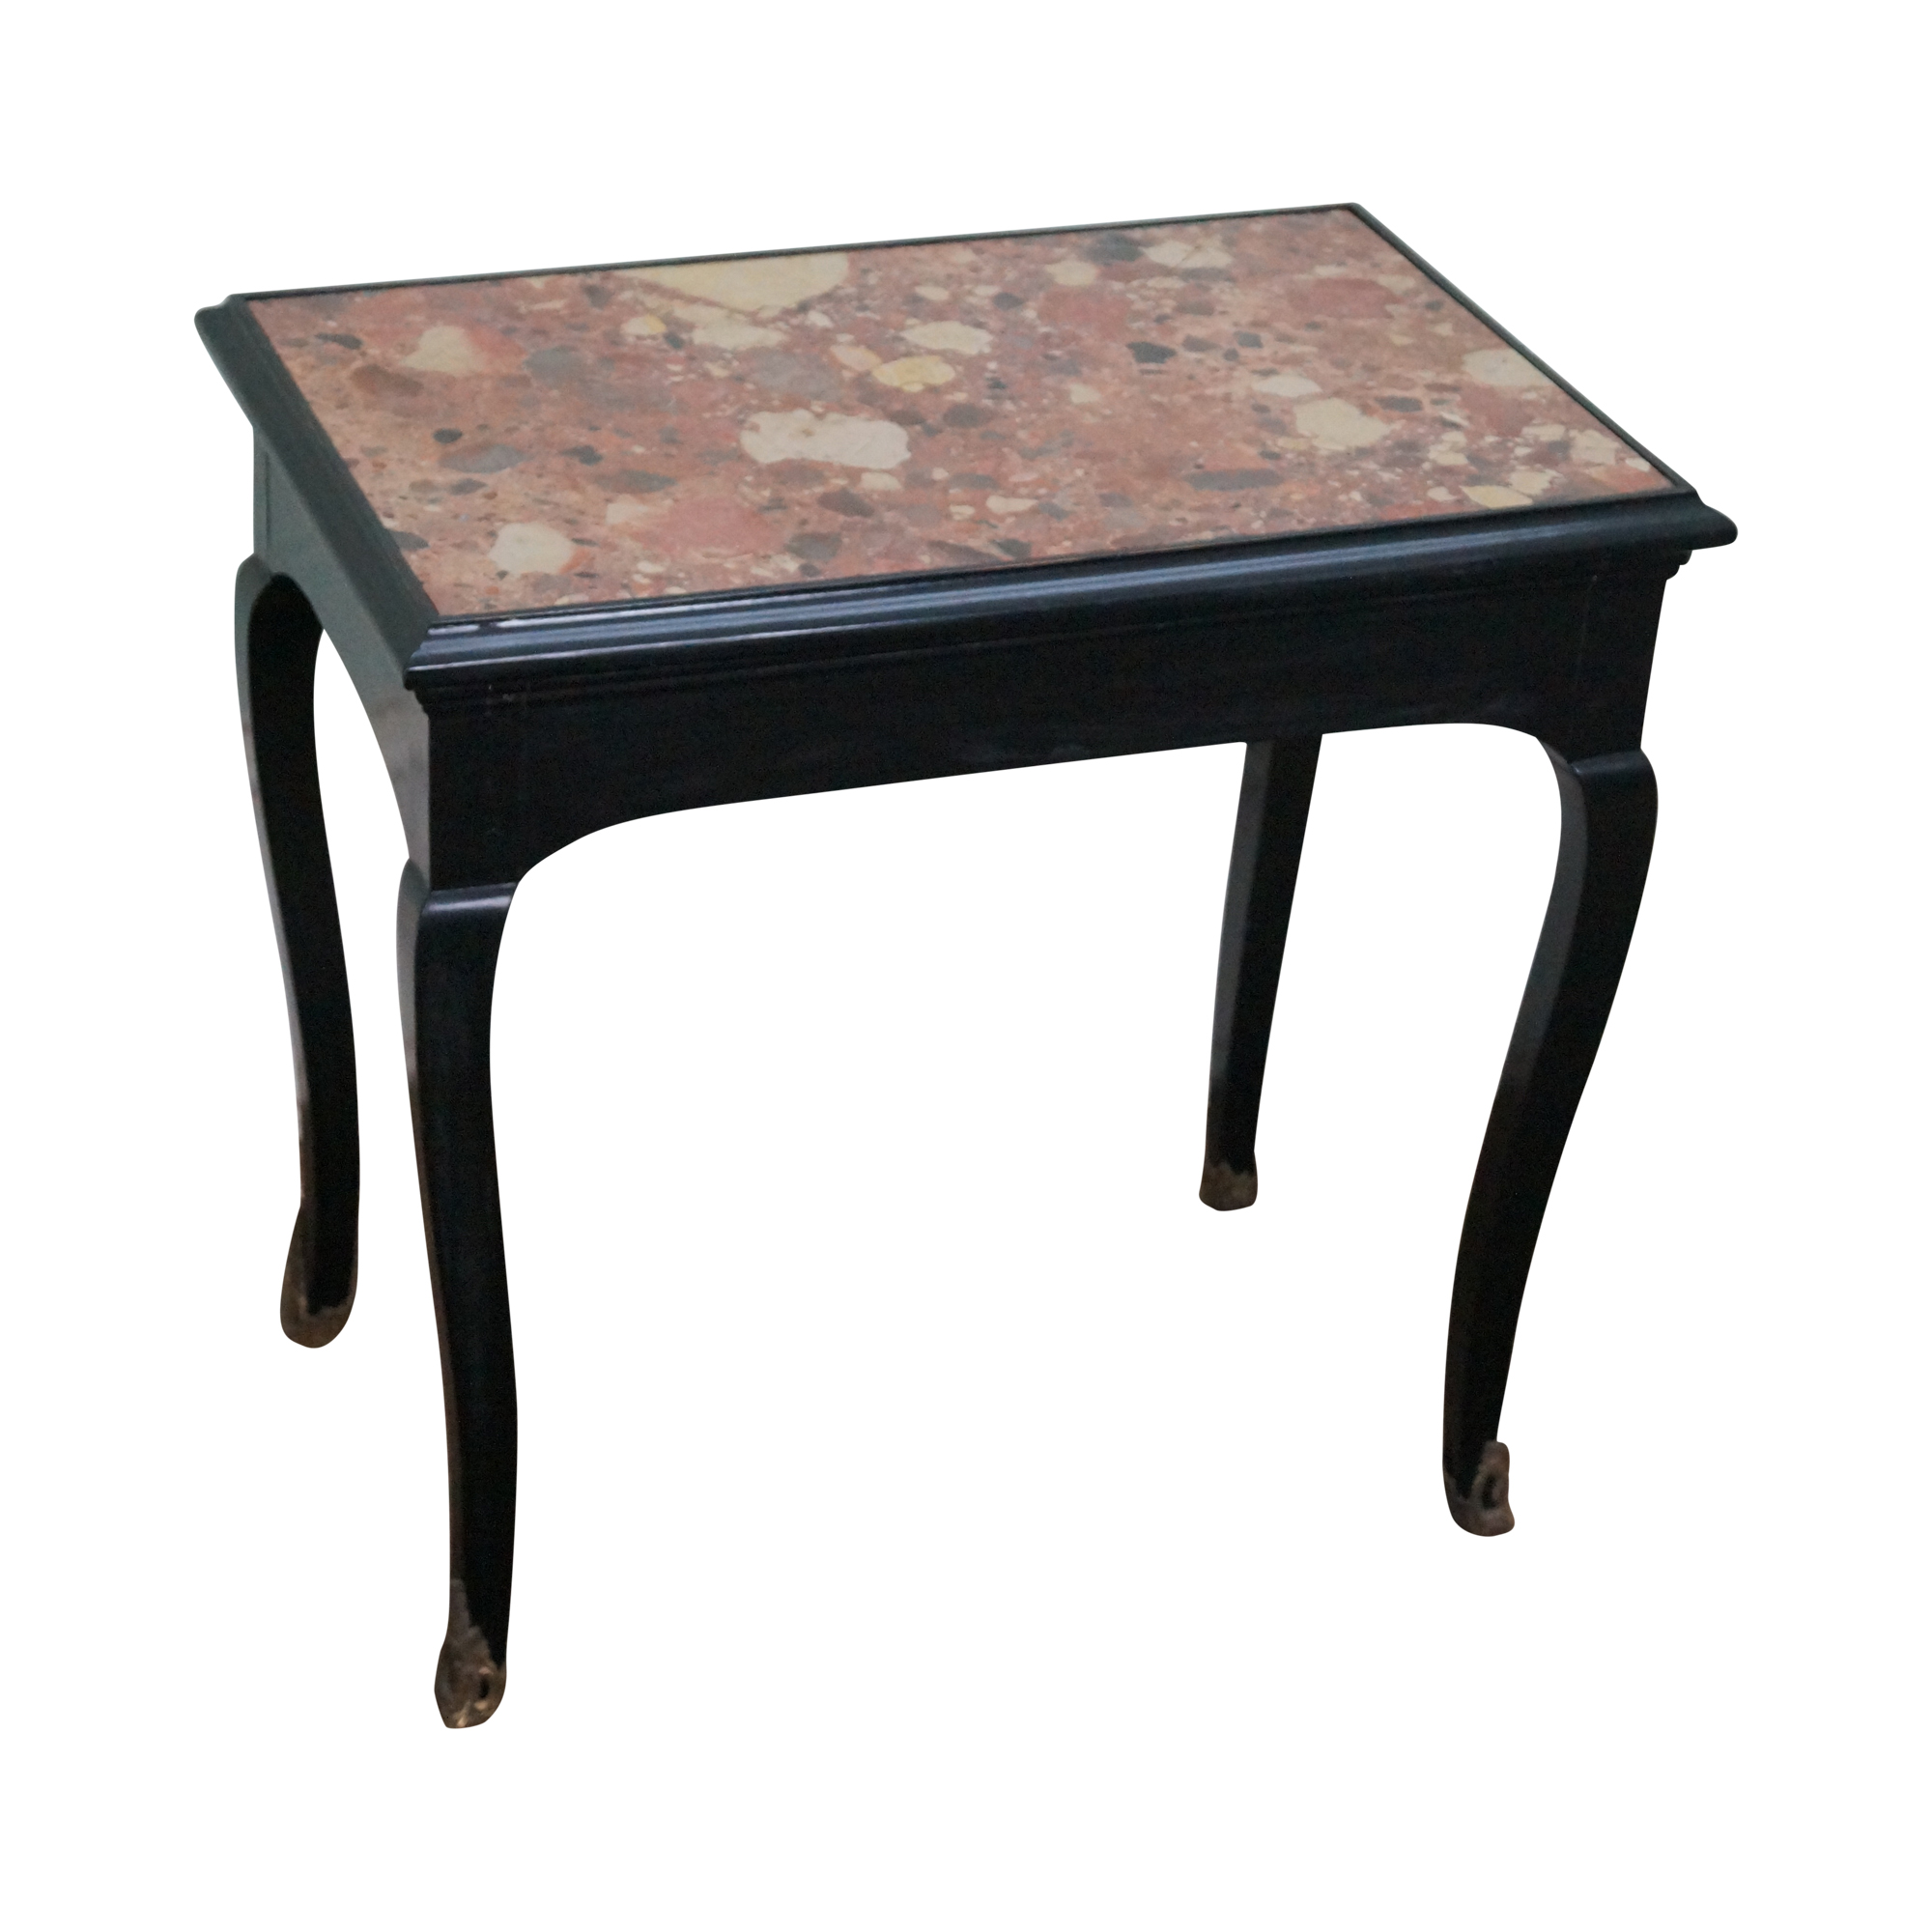 Antique french louis xv marble top side table chairish - Table louis xv ...